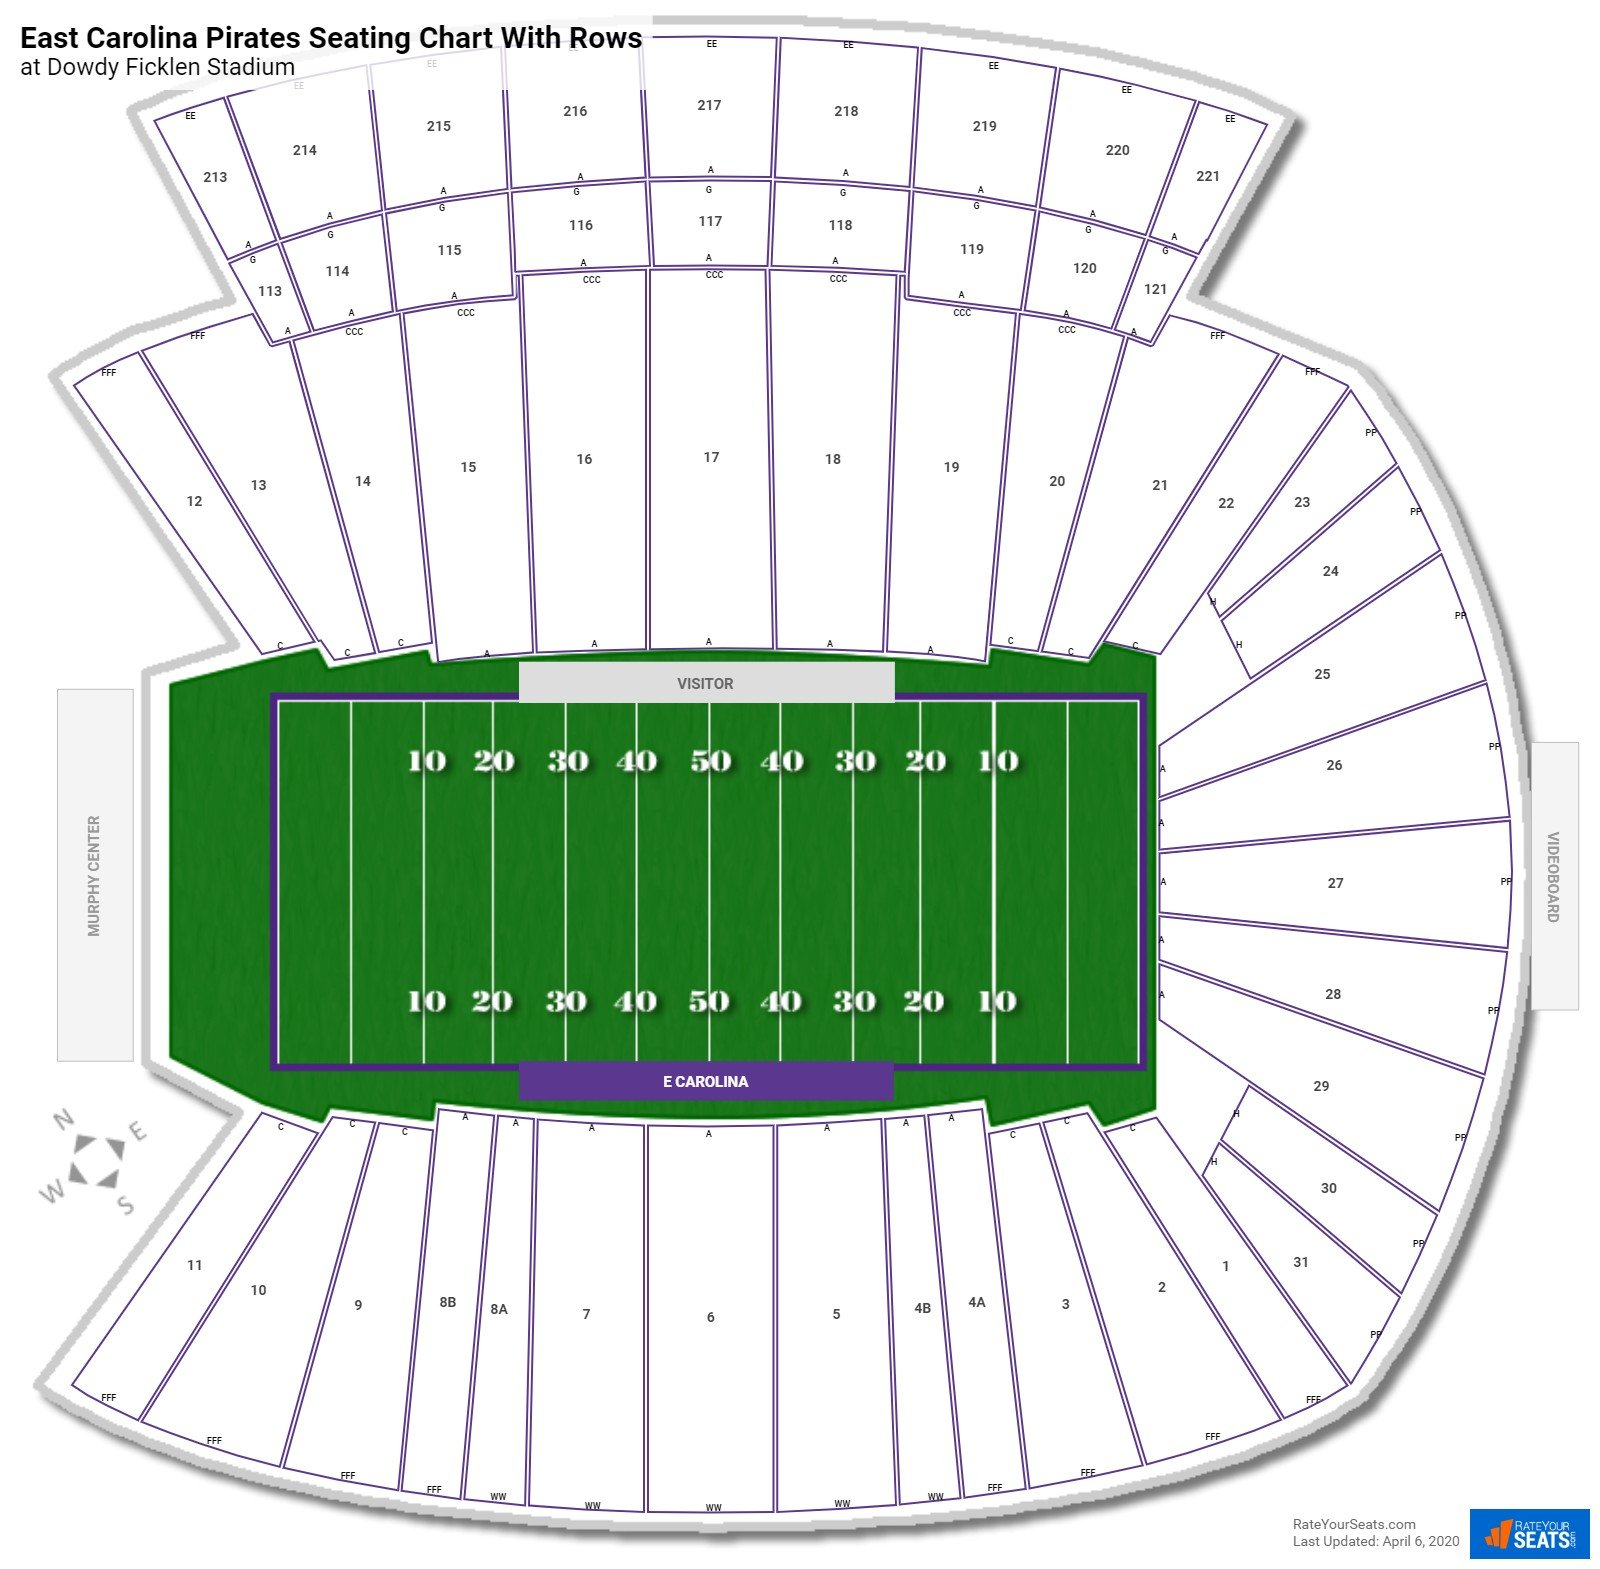 Dowdy Ficklen Stadium seating chart with rows